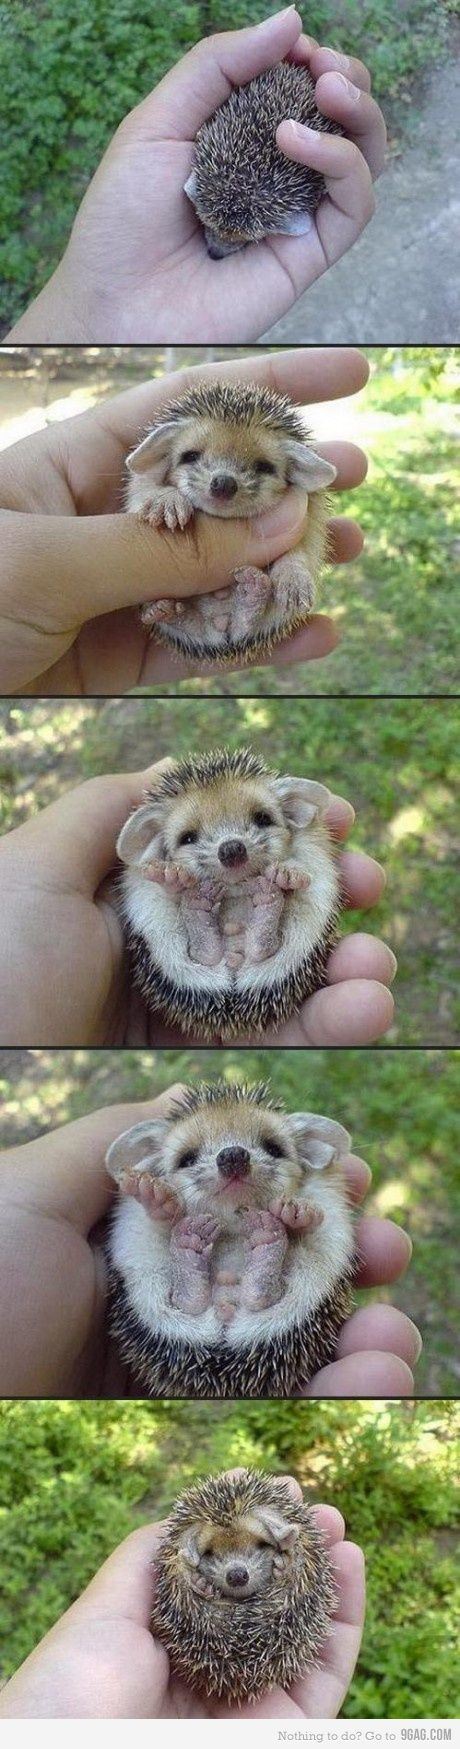 baby animals....they get me everytimeAwww, Stuff, Baby Animal, Adorable, Baby Hedgehogs, Box, Things, Smile, Pets Hedgehogs